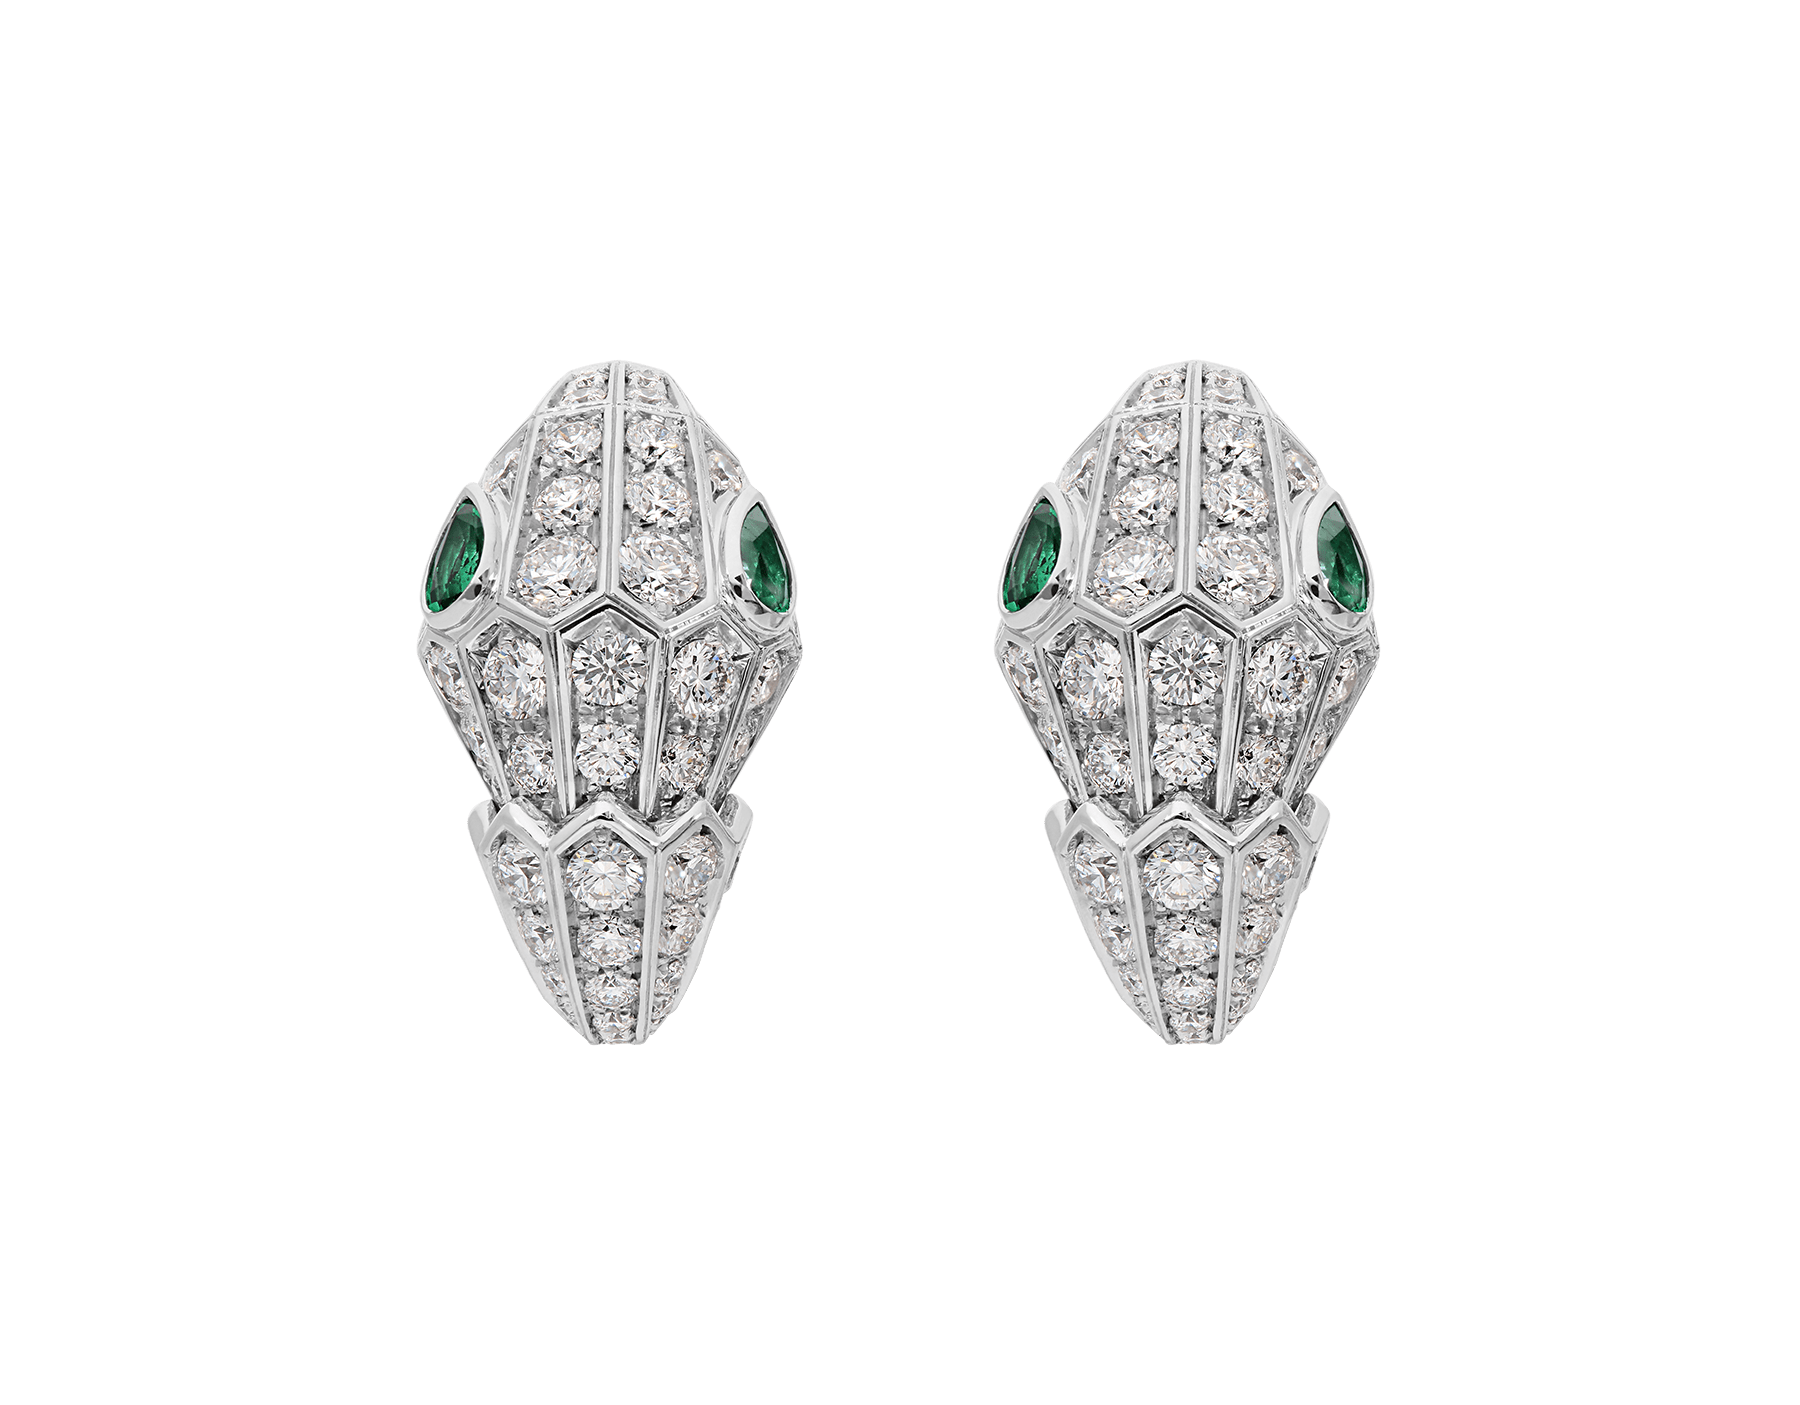 Serpenti 18 kt white gold earrings set with pavé diamonds (3.22ct) and two emerald eyes. (0.51ct) 354702 image 1